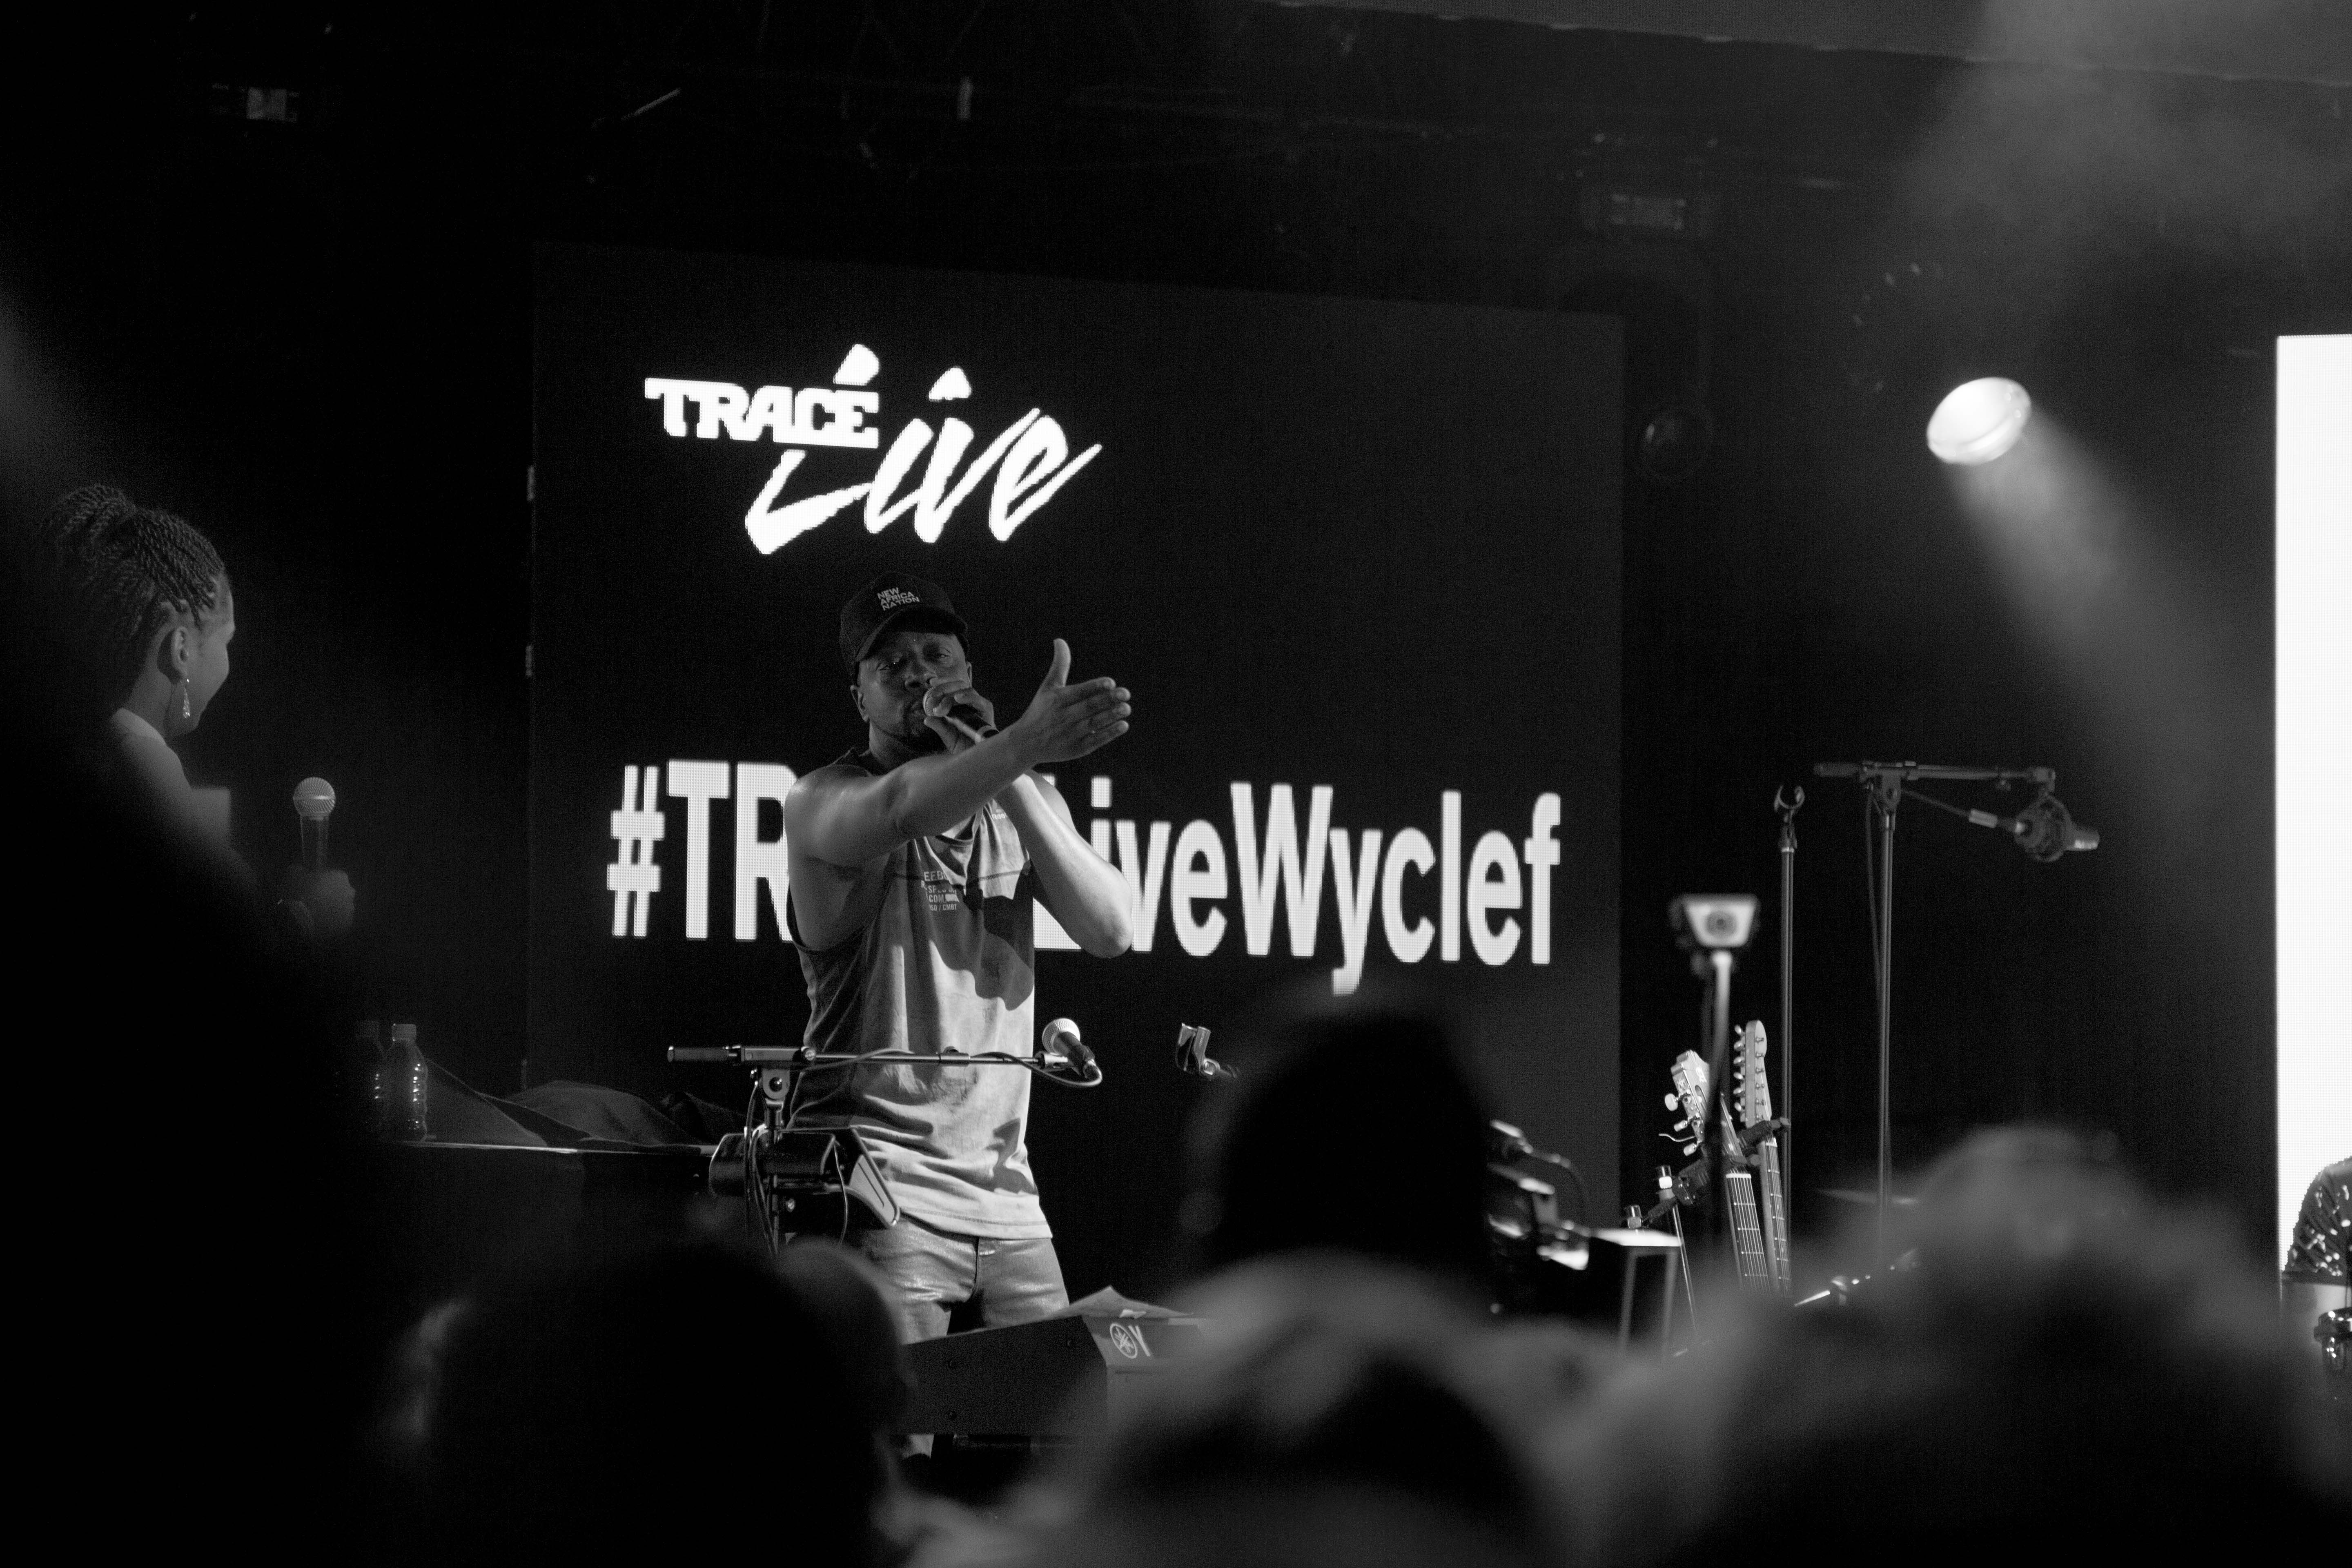 Wyclef_Jean_TRACE_LIVE_13_06_2017 © Jmagerie